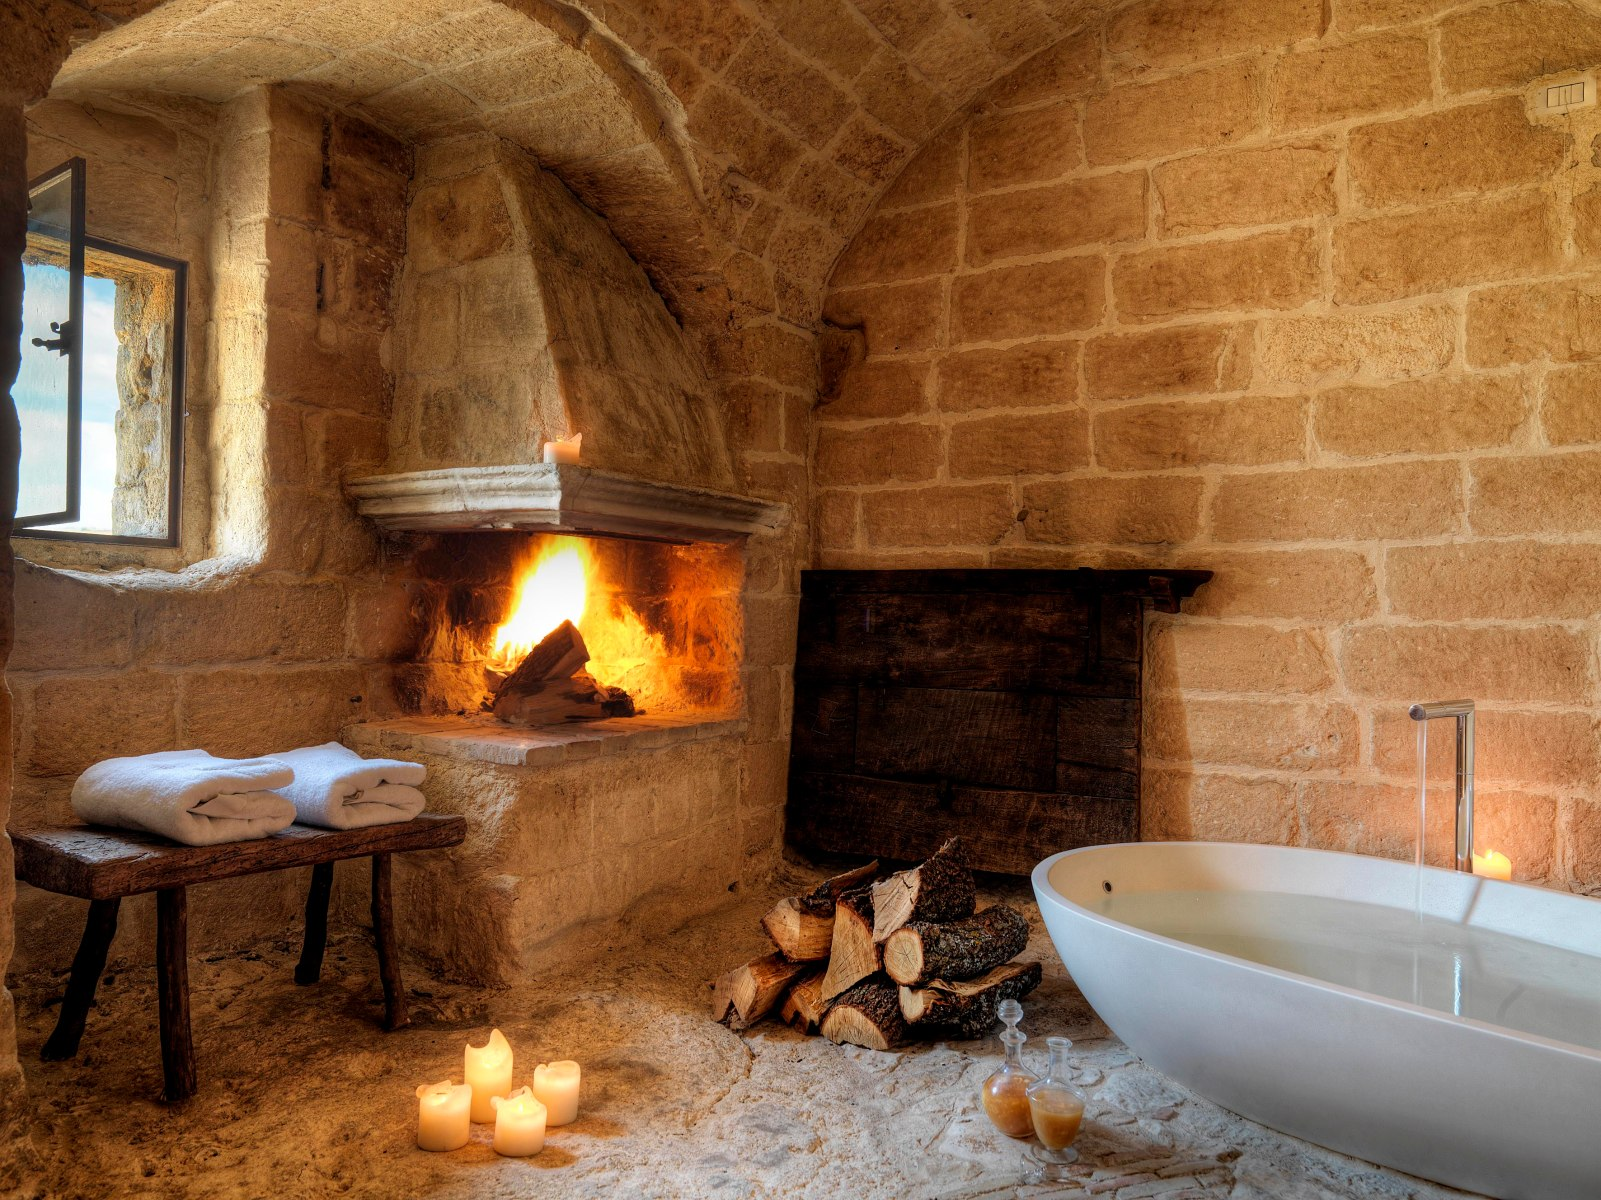 Cave 13's romantic bathtub and fireplace. Perfect Italian accommodations.